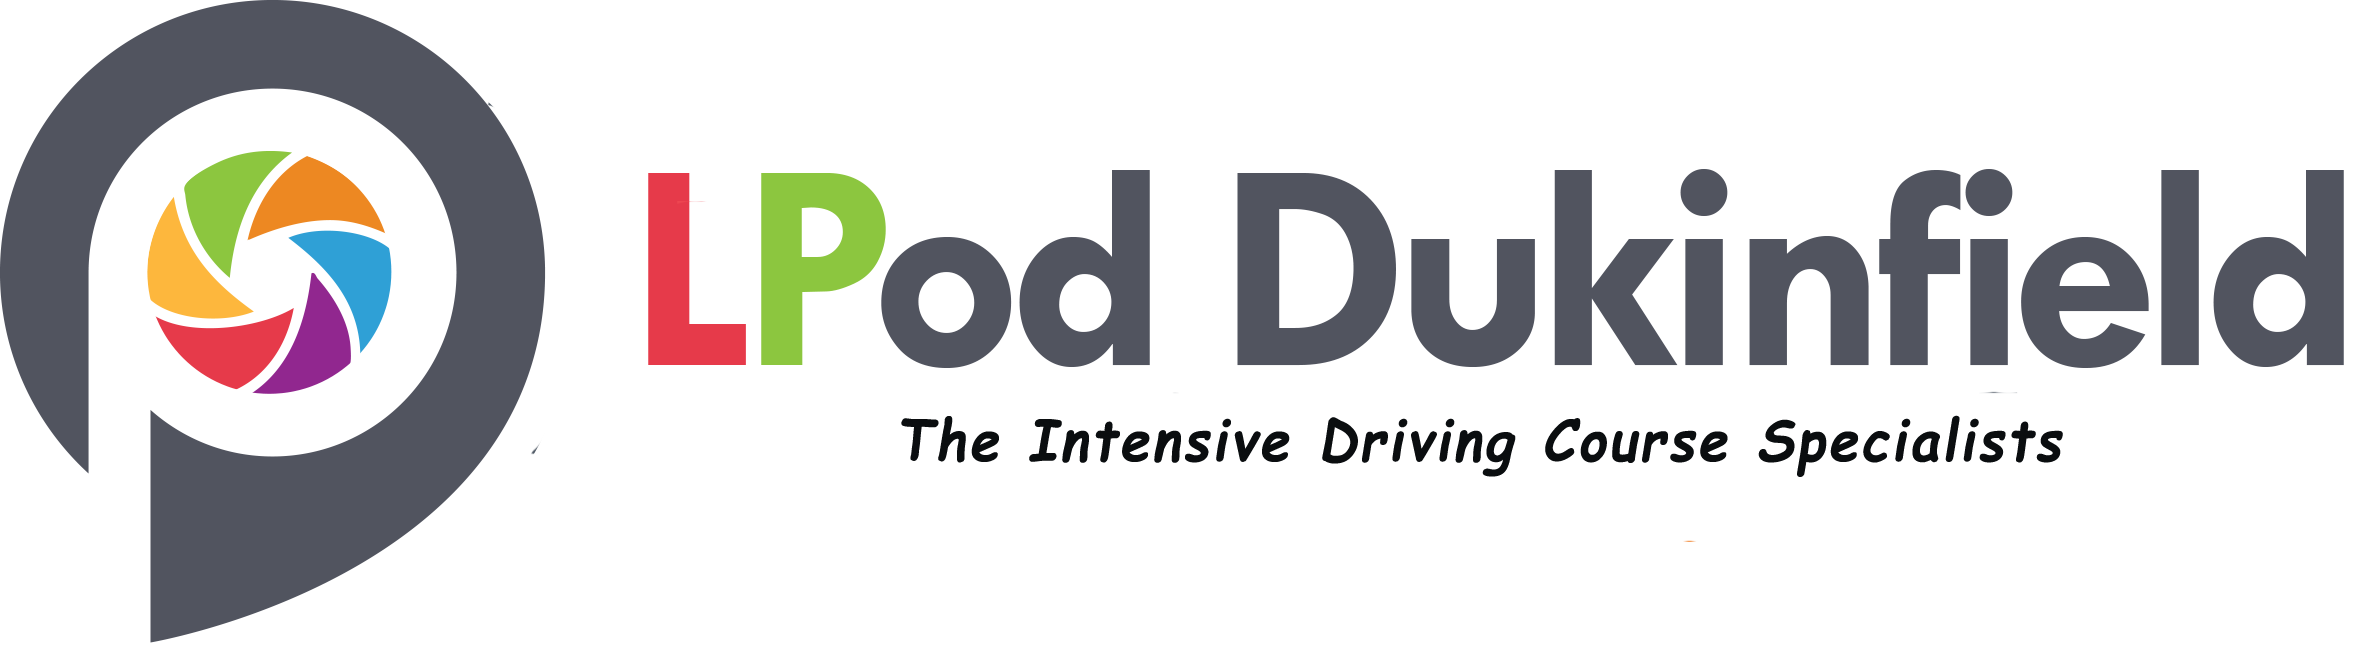 intensive driving courses Dukinfield